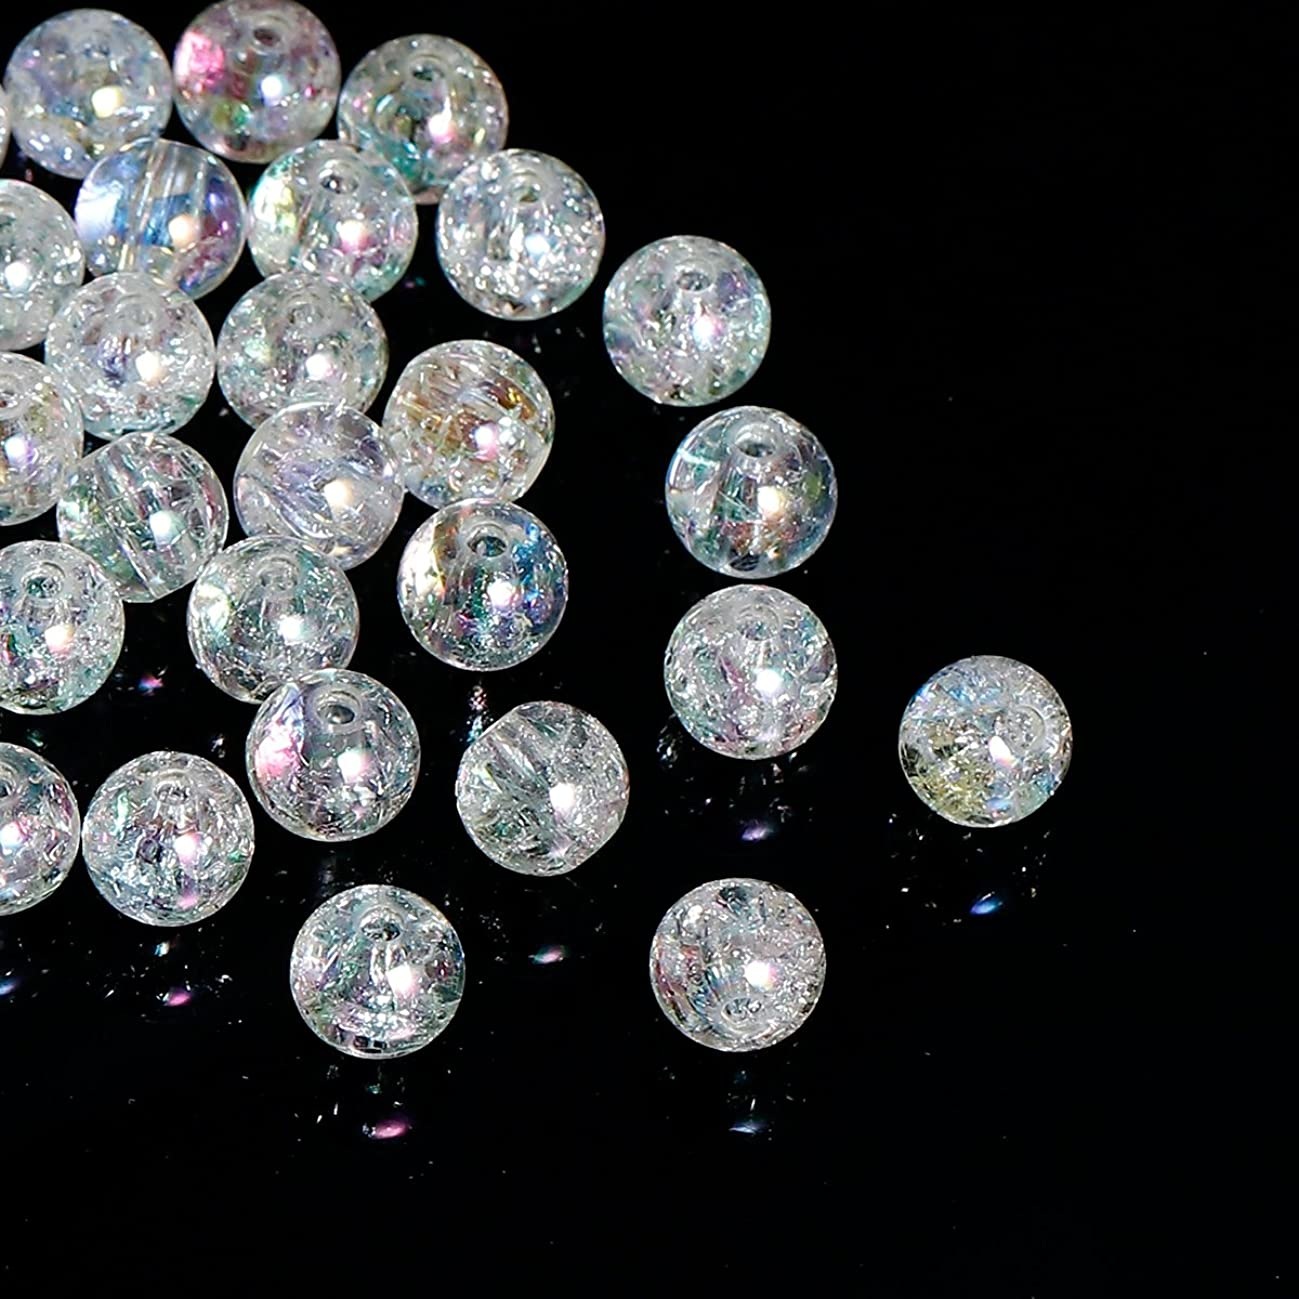 600 Acrylic Round Clear Crackle AB Spacer Beads 8mm or 3/8 Inches with 2mm Hole